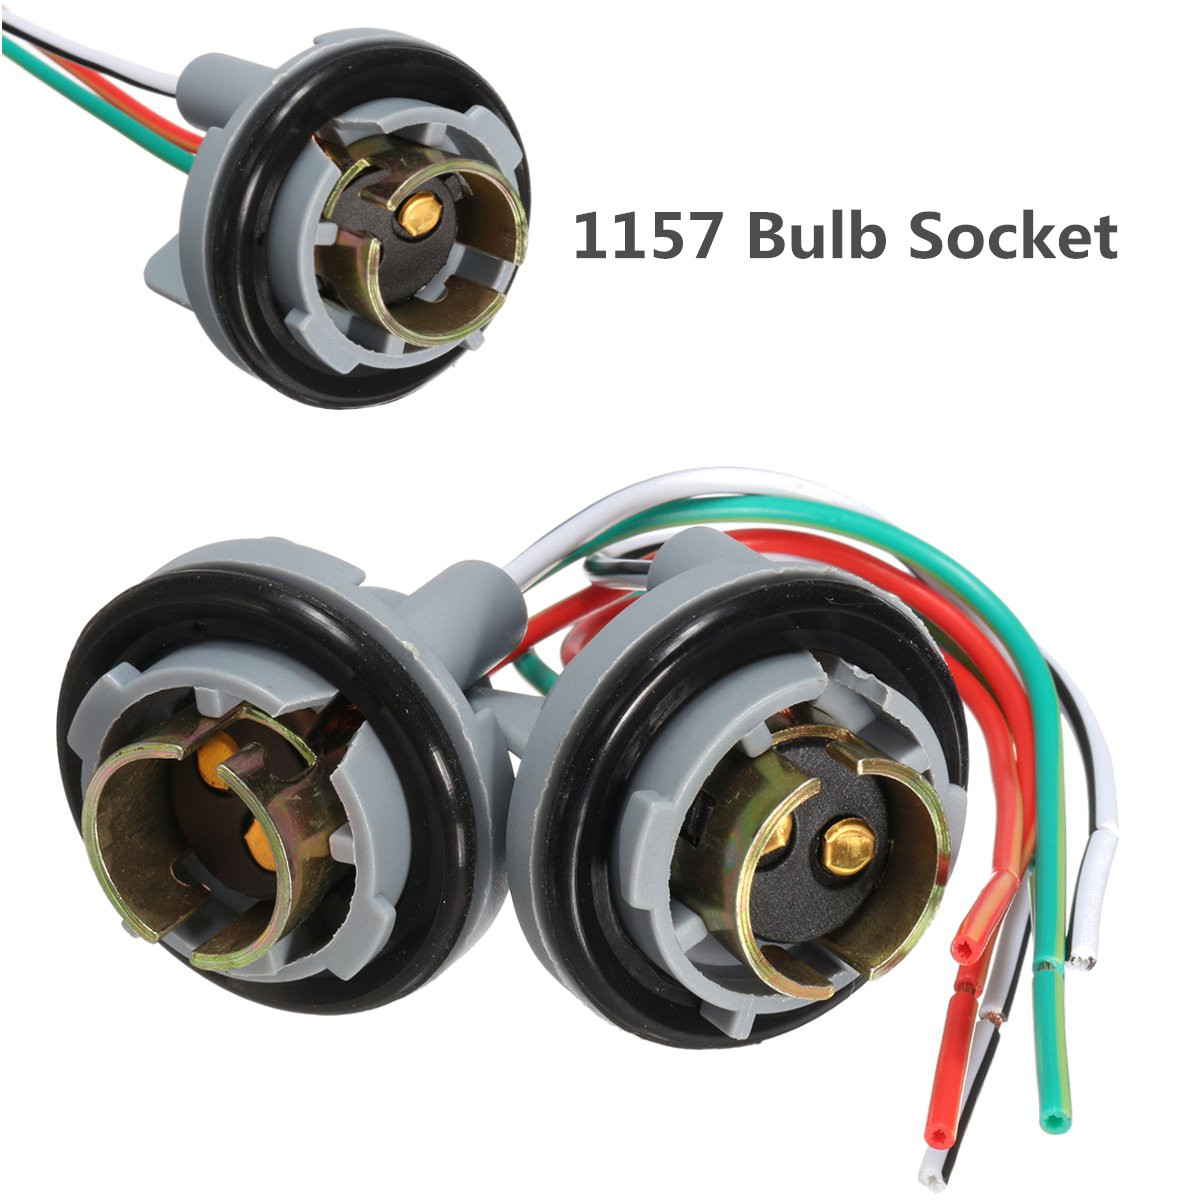 hight resolution of generic 2x 1157 turn light brake bulb socket connector wire harness plug for led bulbs